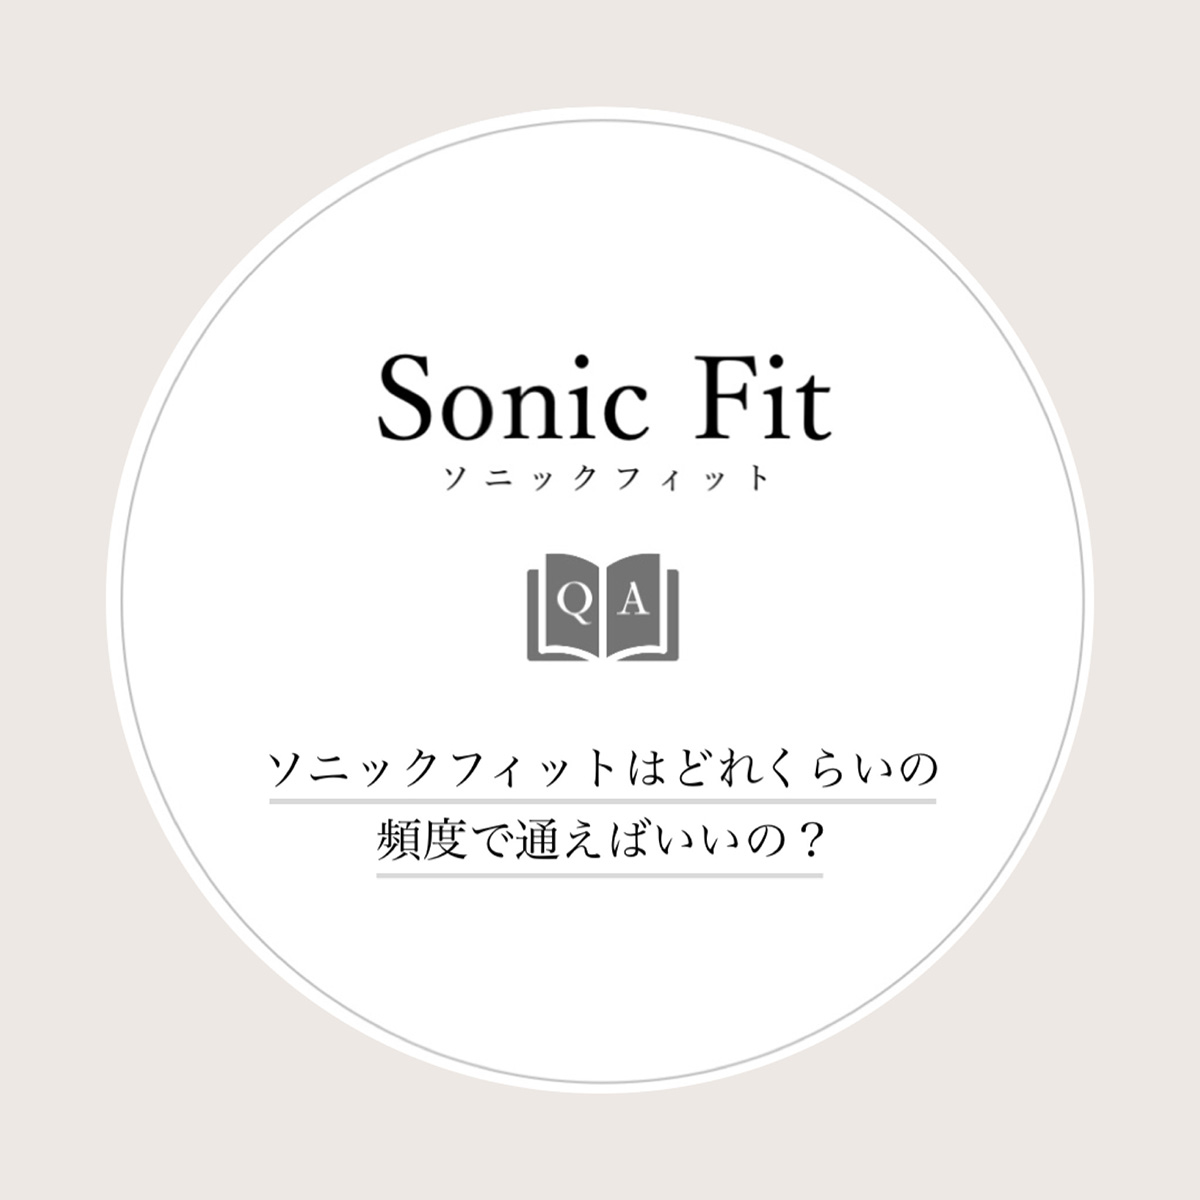 Sonic Fit